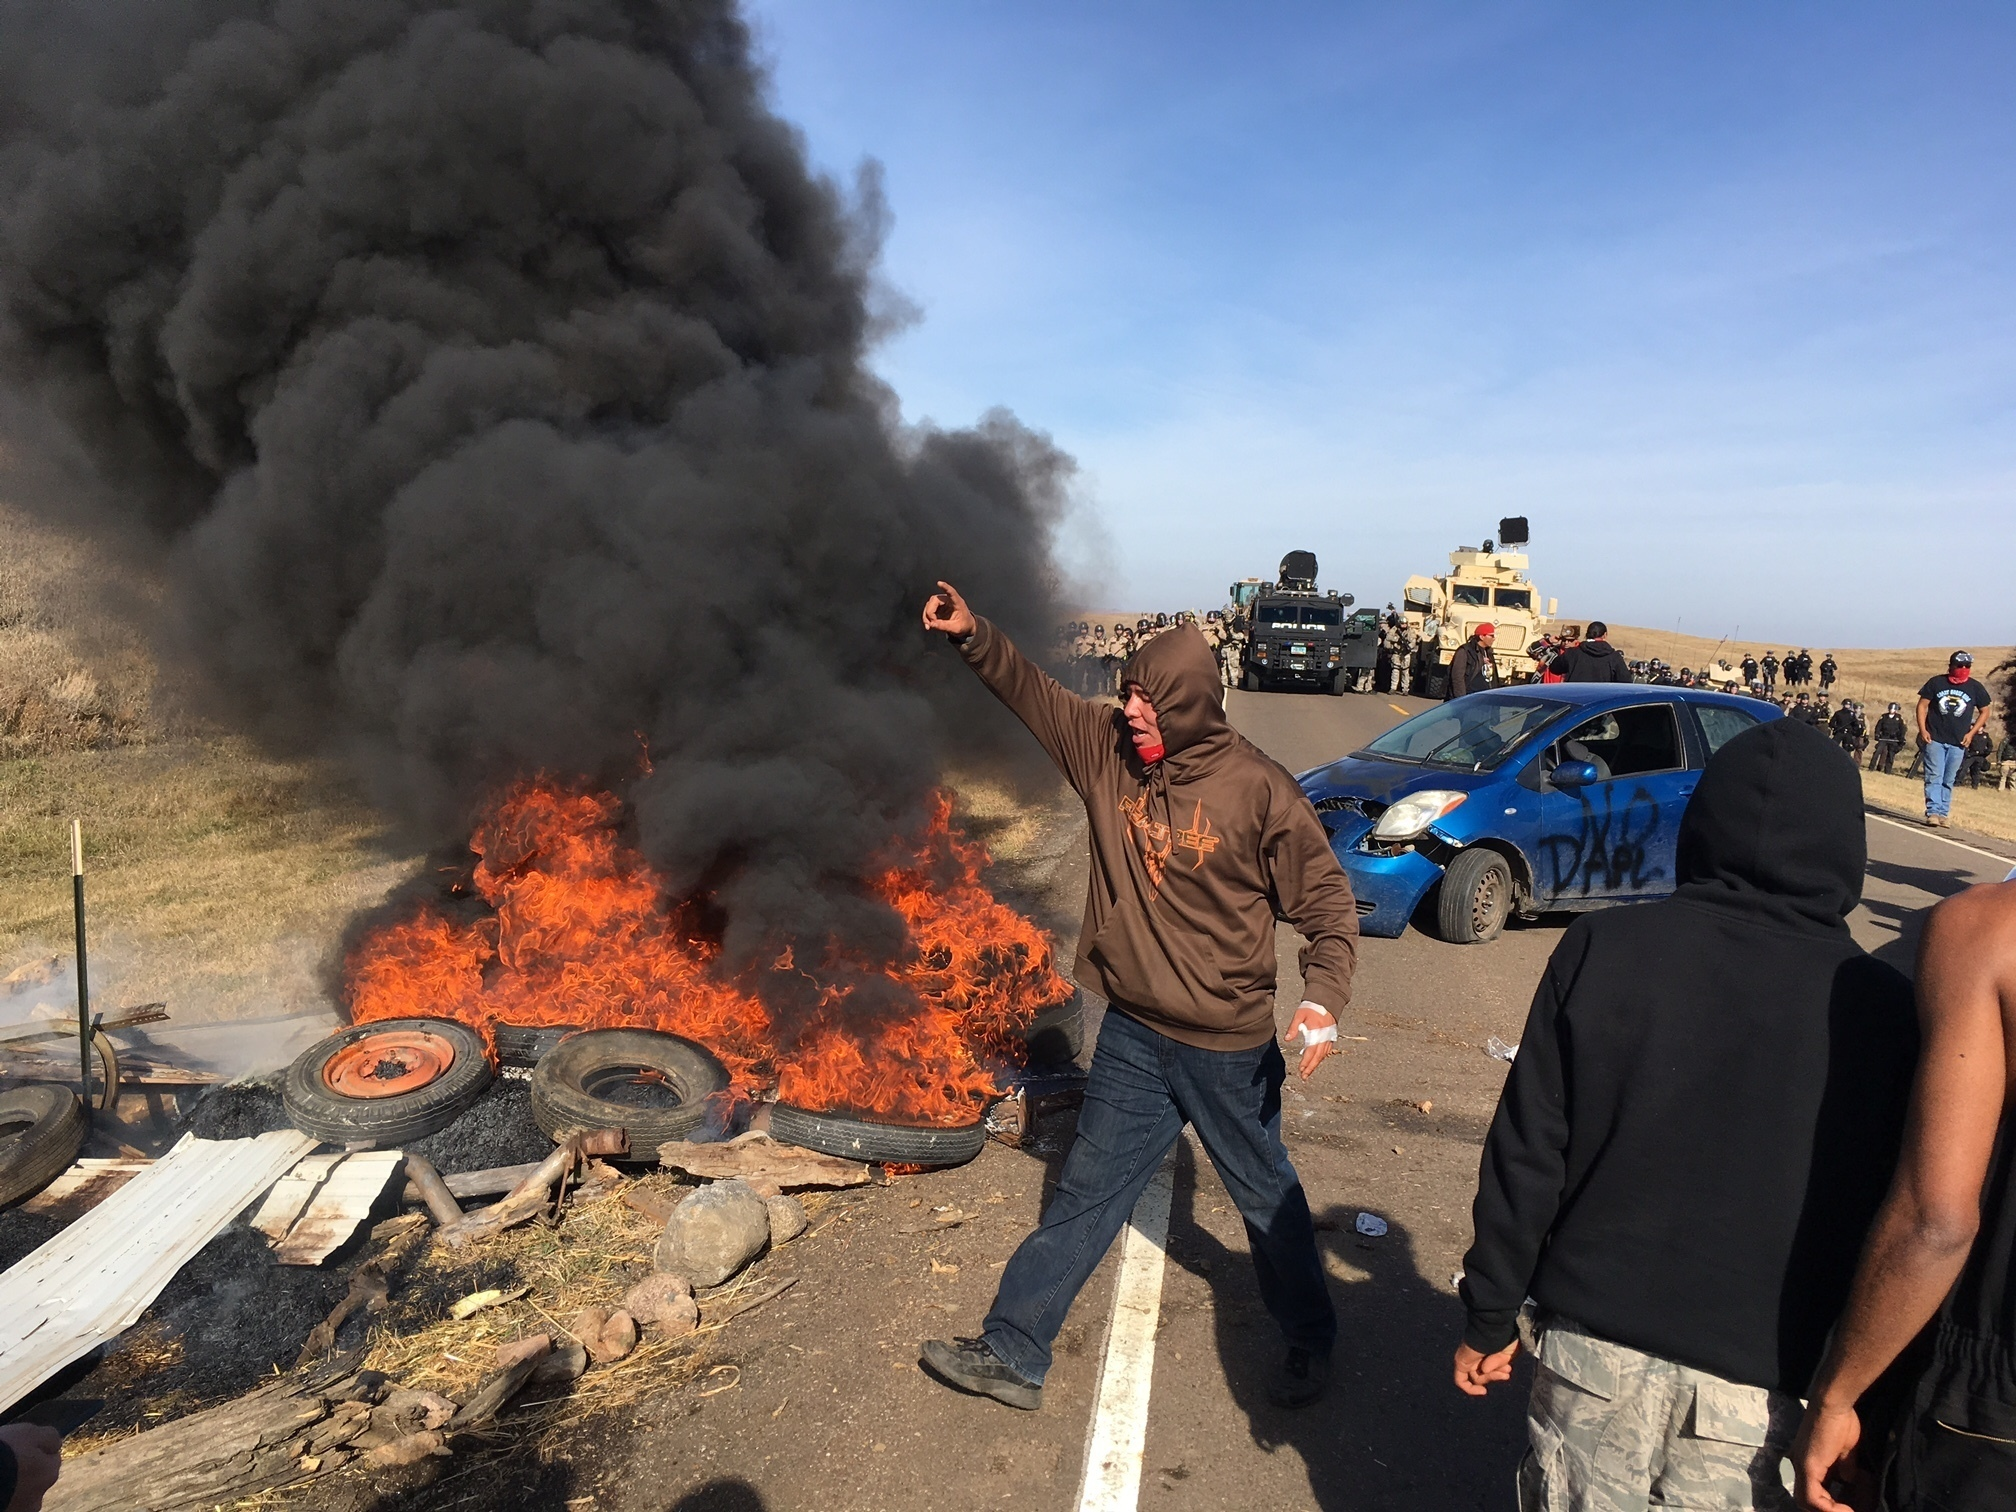 Demonstrators stand next to burning tires as armed soldiers and law enforcement officers assemble on Oct. 27, 2016, to force Dakota Access pipeline protesters off private land where they had camped to block construction. (Mike McCleary/The Bismarck Tribune via AP)